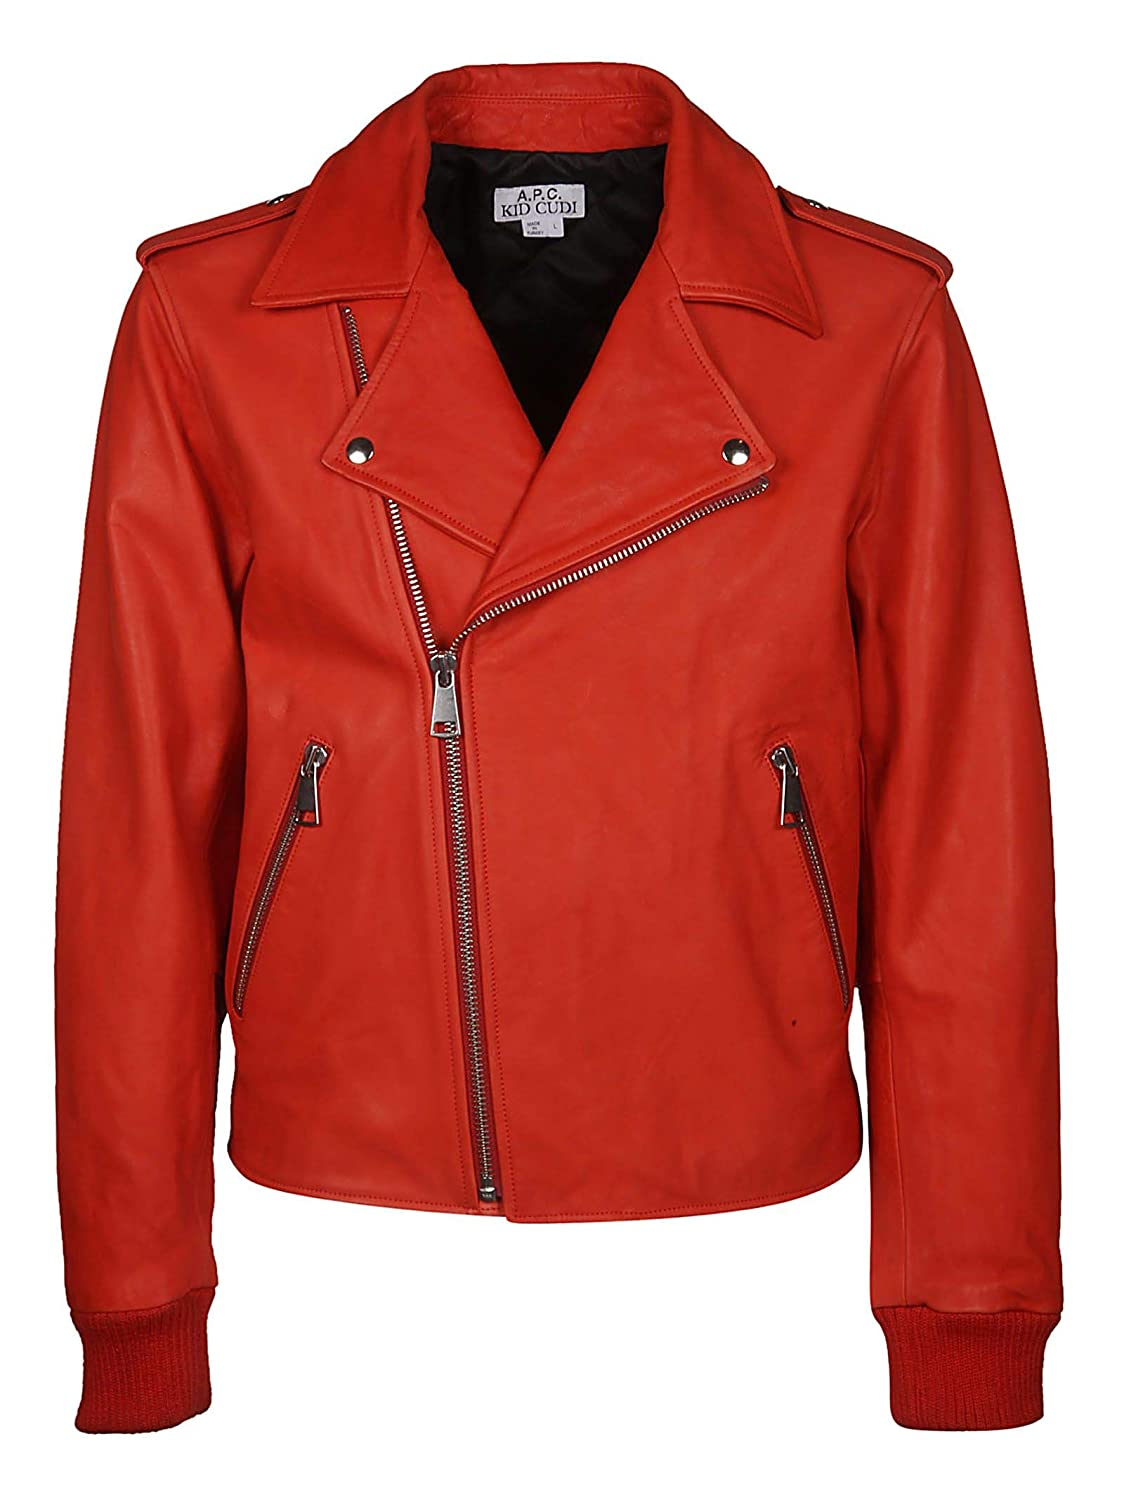 A.P.C. Men's PXBKXH02578GAAred Red Leather Outerwear Jacket